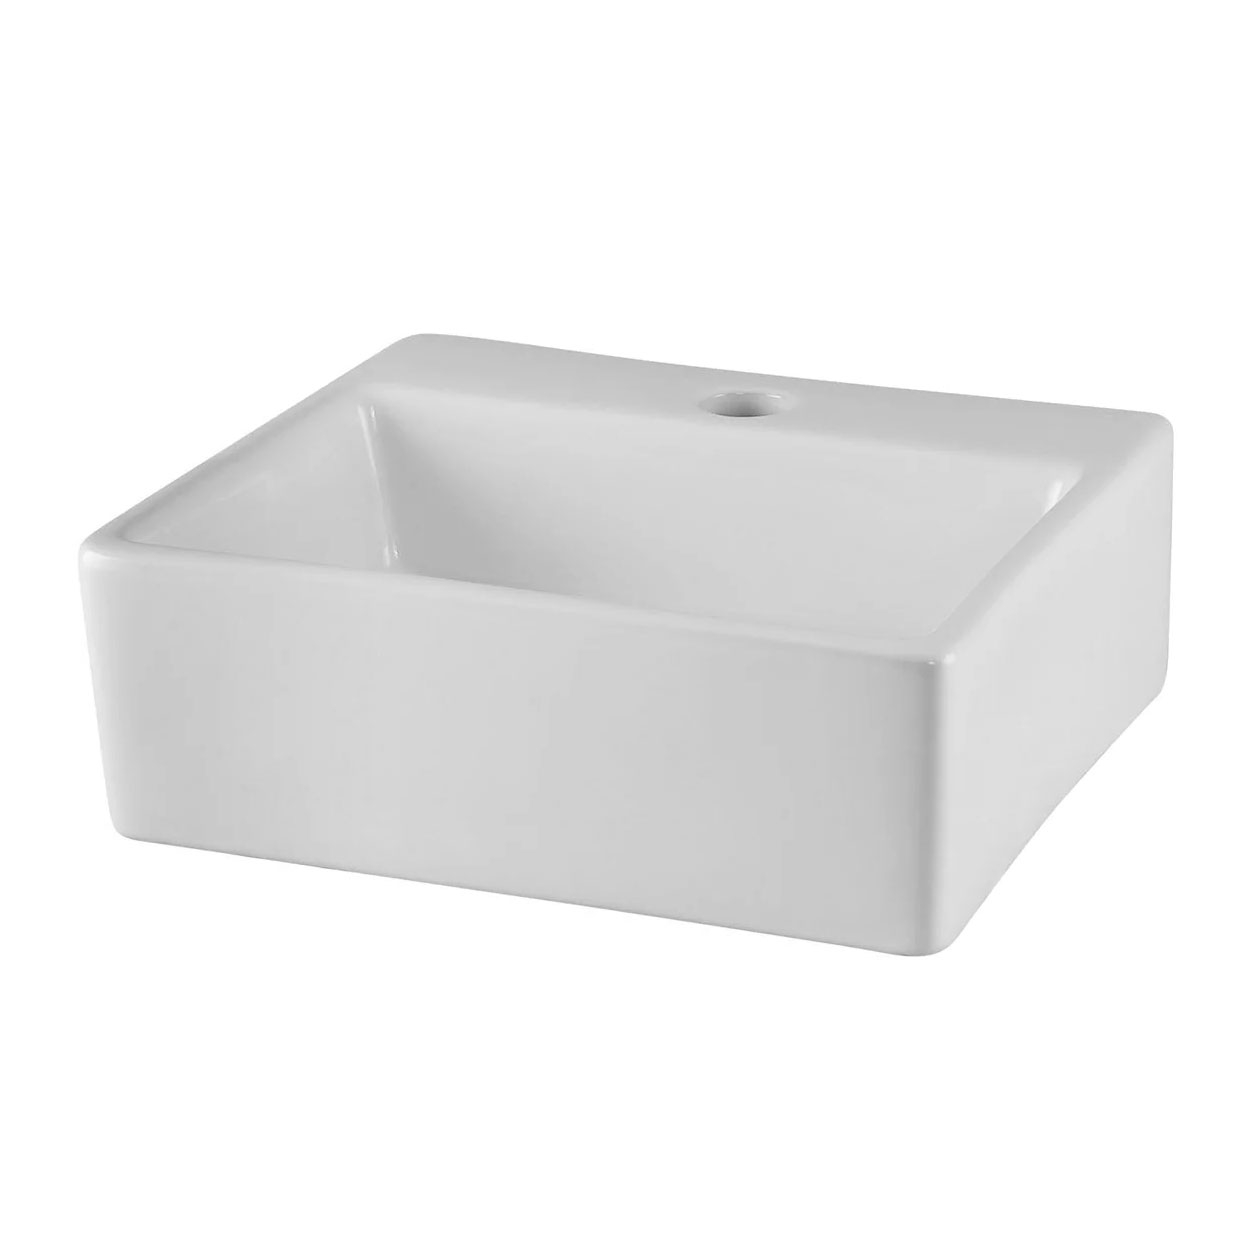 Premier Vessels Rectangular Countertop Basin 335mm Wide - 1 Tap Hole